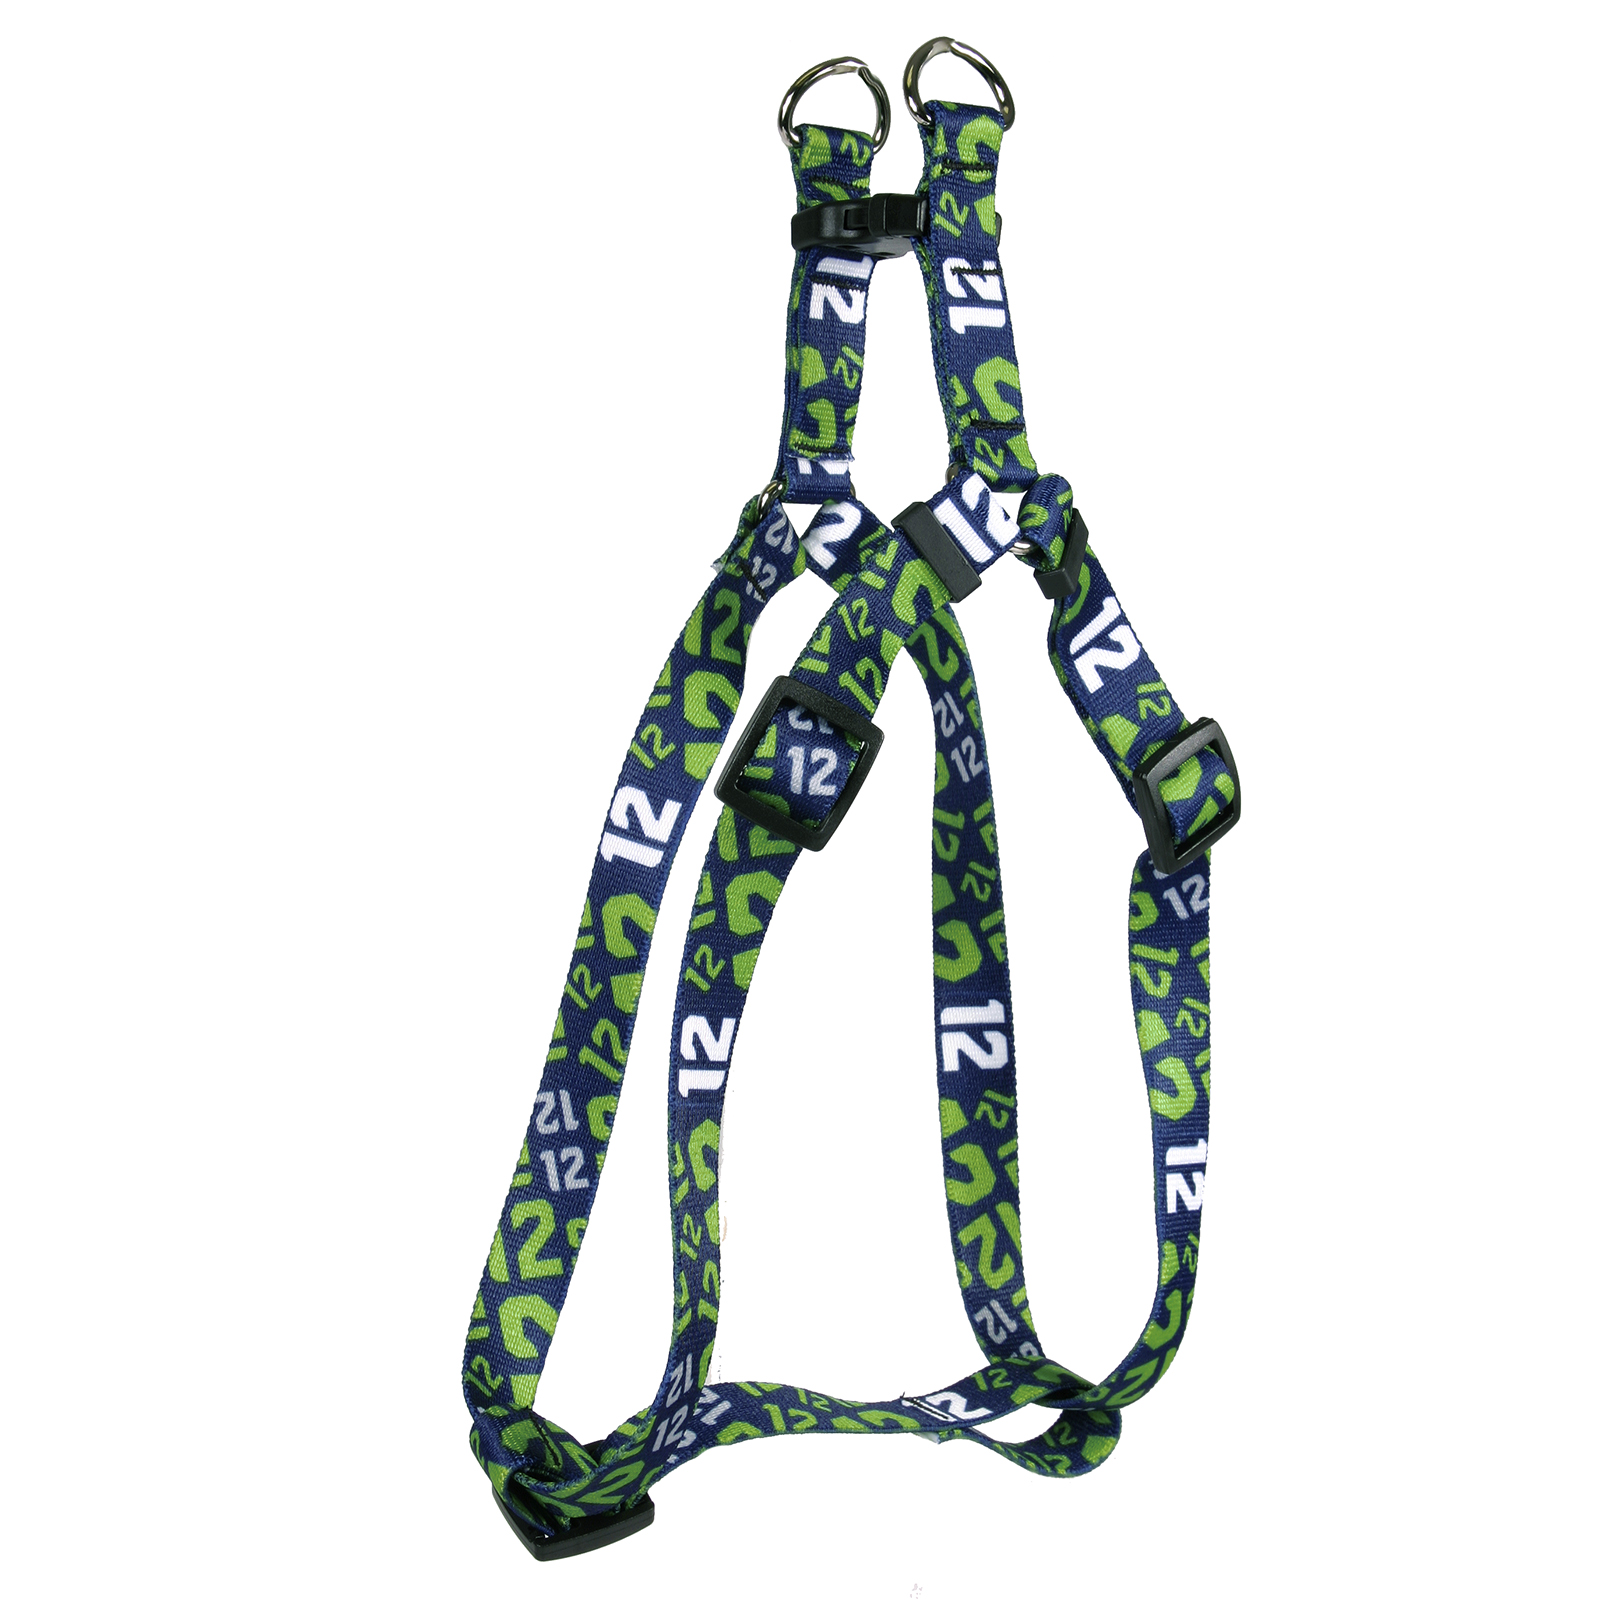 12th Dog Navy Blue Step-In Harness